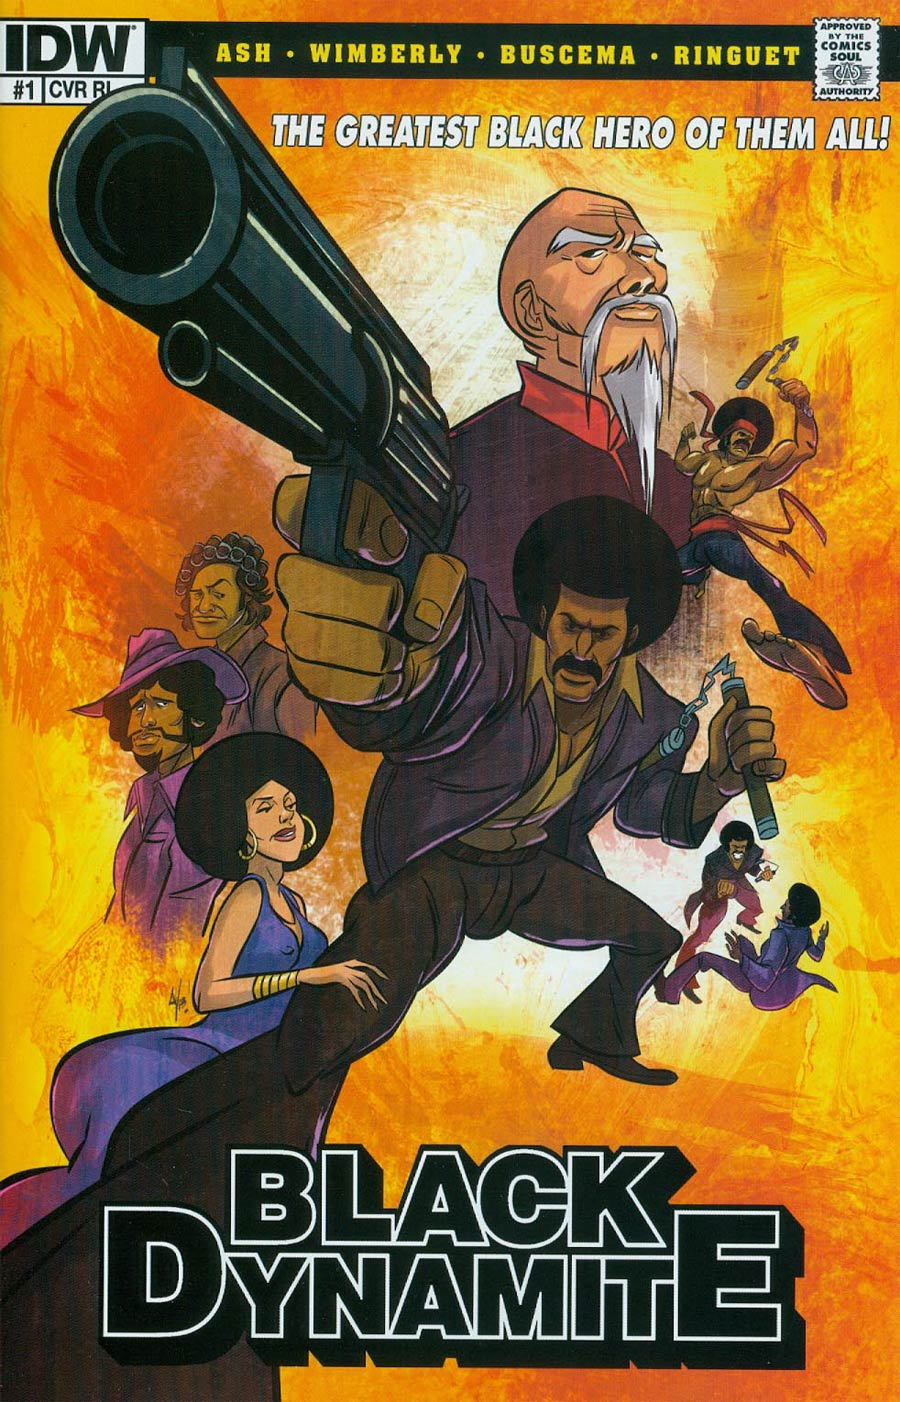 Black Dynamite #1 Cover C Incentive Six Point Harness Studios IDW Gets Animated Variant Cover